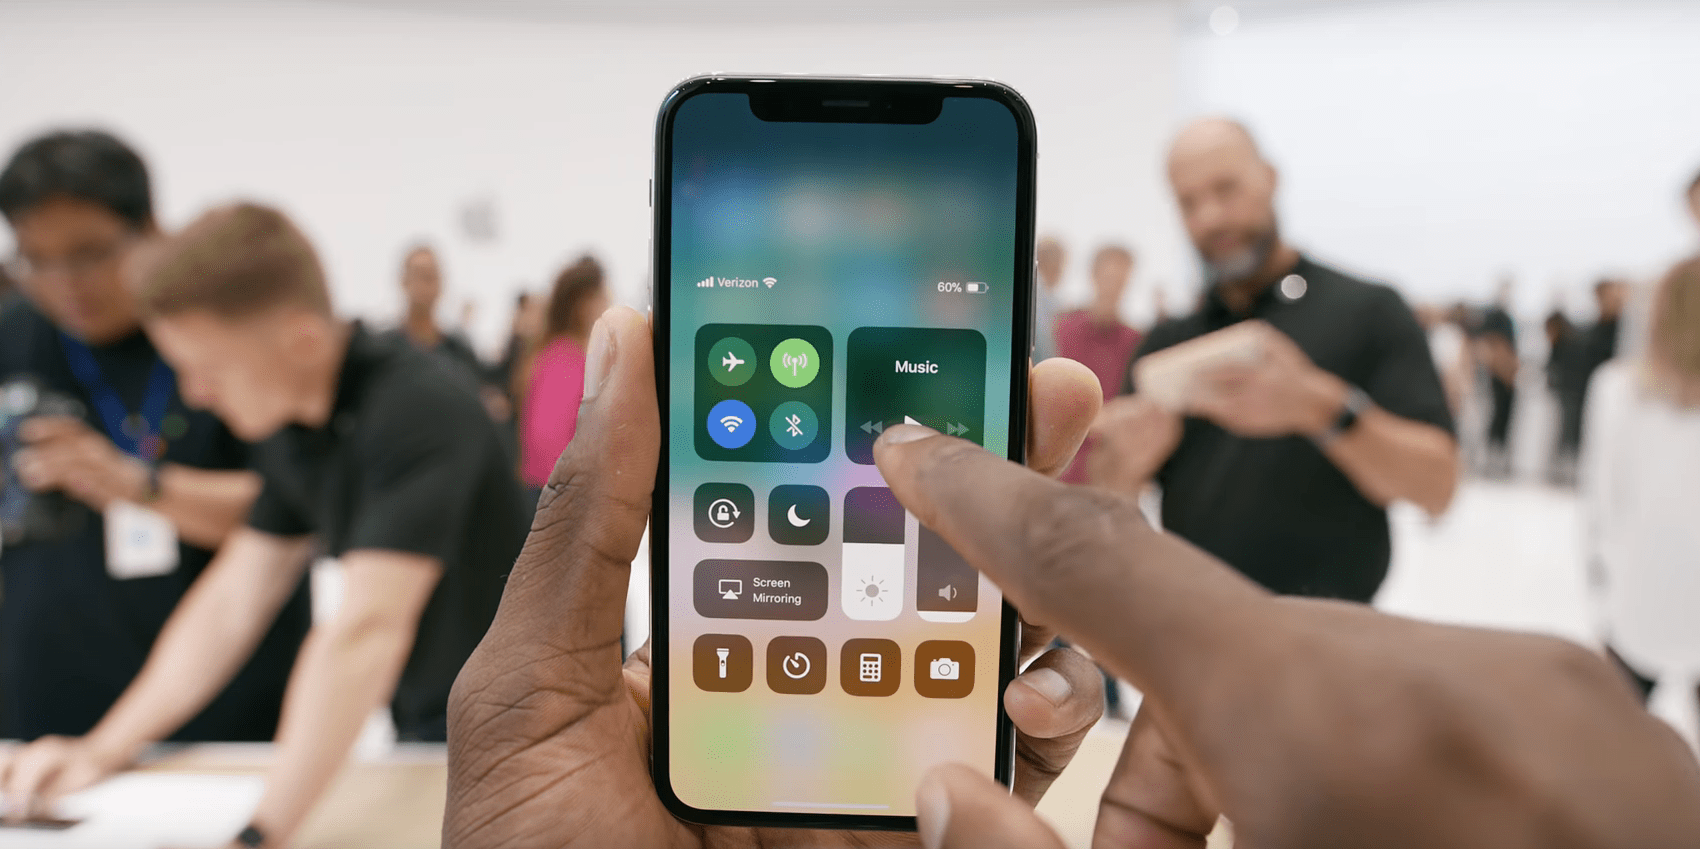 access the Control Center on the iPhone X